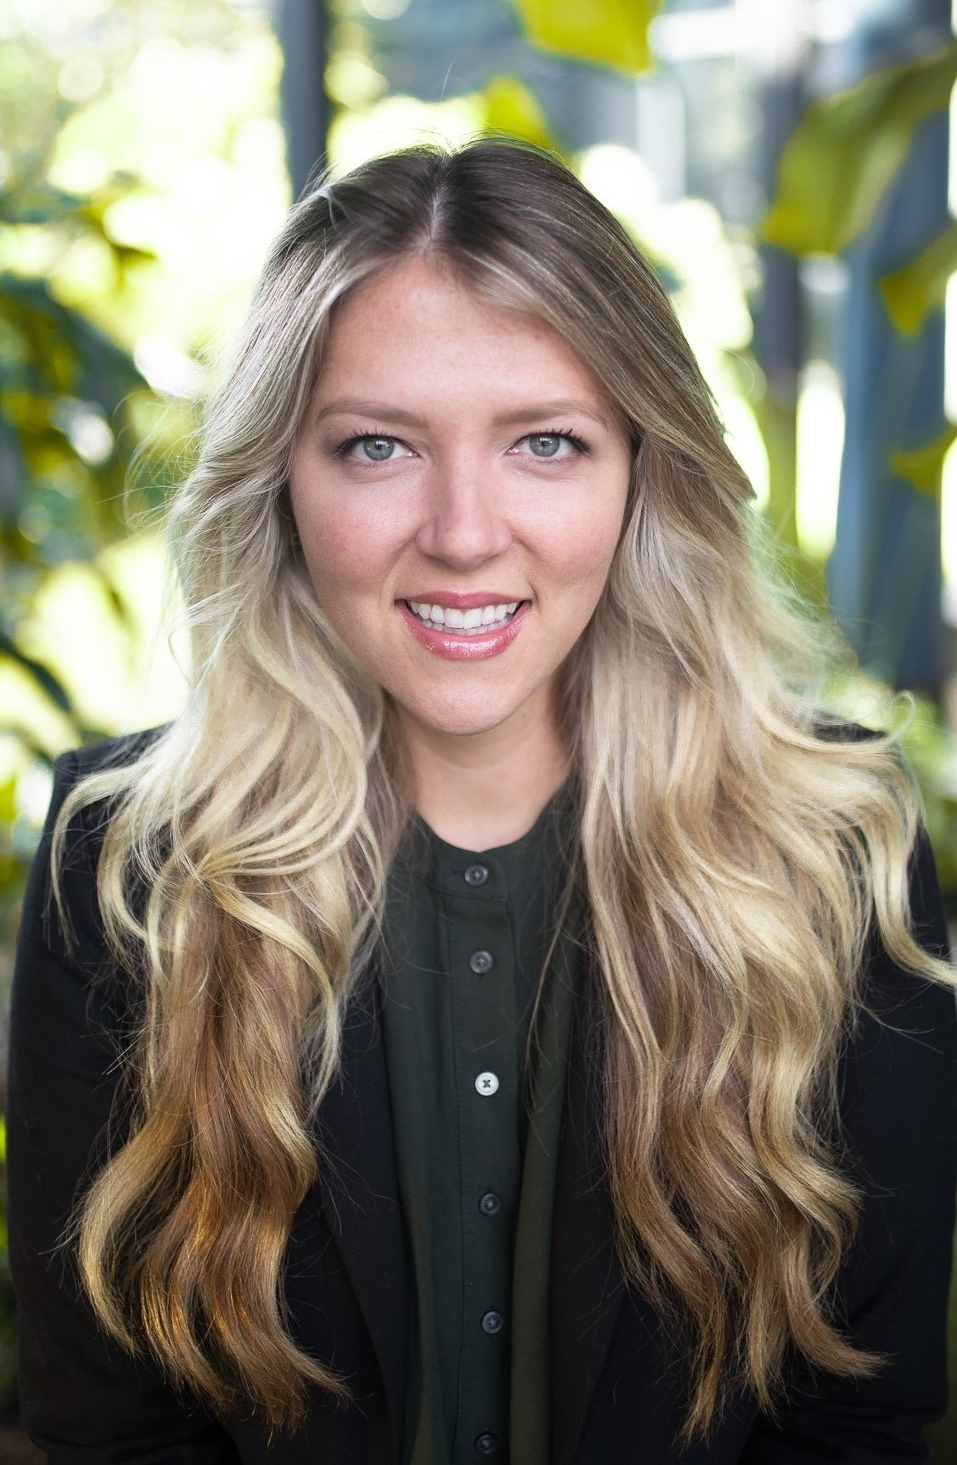 Alissa Sieben - Alissa Sieben joined 2nd Wave in mid-2018 after serving as the Development Manager for Norstar Development where she successfully supervised all facets of the development process for various projects which included deal structuring and construction supervision. At 2nd Wave, Alissa's role includes primary oversight responsibility for all prospective and current projects.Prior to representing owners' interests in development, Alissa worked in the Land Use law arena where she assisted clients with litigation, eminent domain negotiations, and rezoning and comp plan amendments in quasi-judicial settings. Her unique skill set and background provide our team with a rare competitive advantage.Alissa graduated Cum Laude with both her Juris Doctorate degree and undergraduate degree in entrepreneurship from the Florida State University.e-mail: asieben@2ndwavedevelopment.com